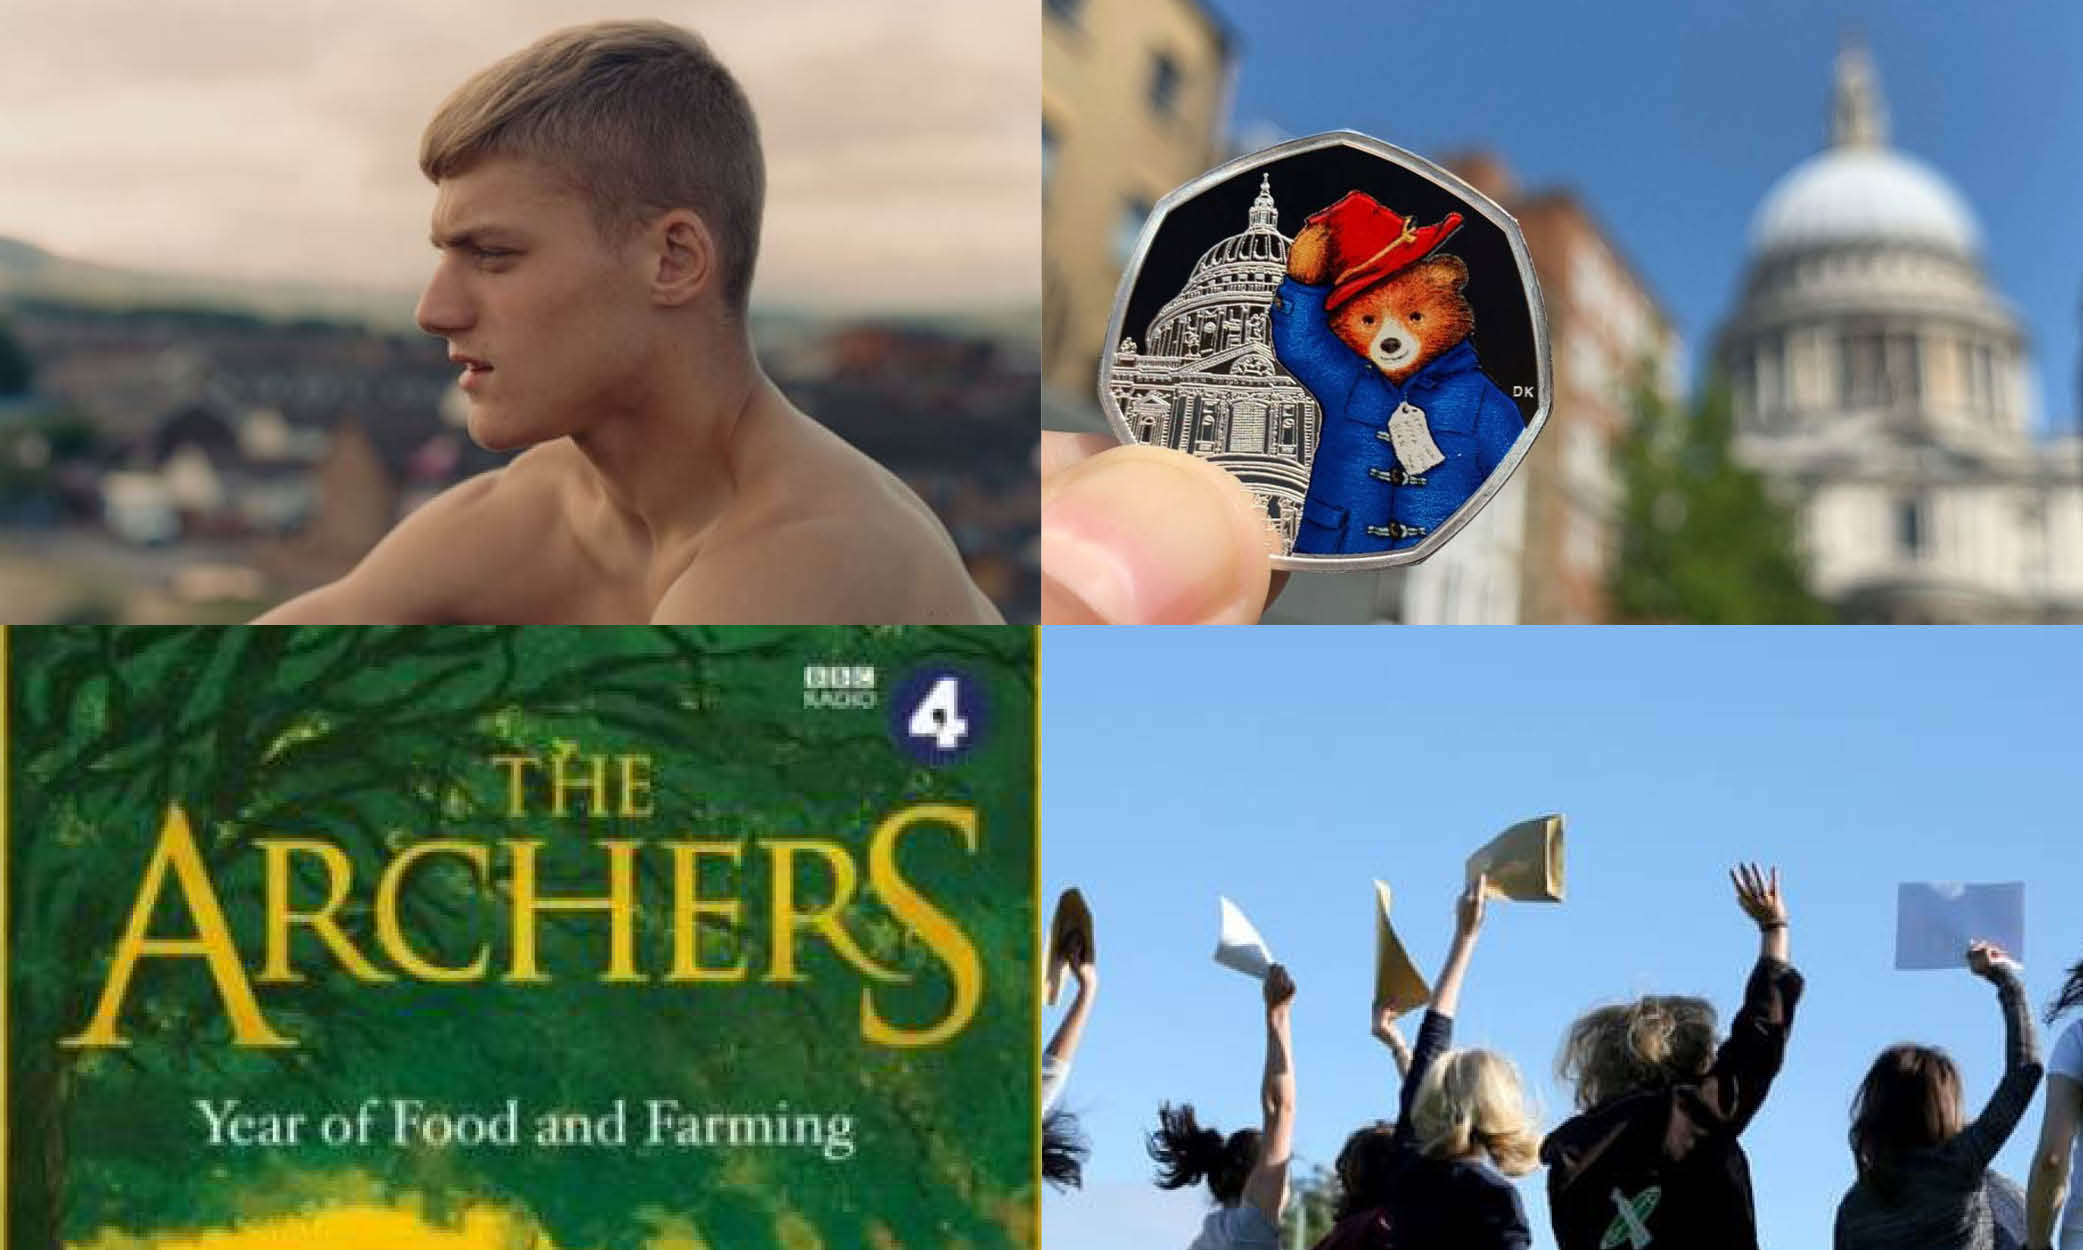 Four images - (1) Topless man on hill, (2) Paddington Bear commemorative coin in front of St. Paul's, (3) The Archers, (4) People waving and holding up papers